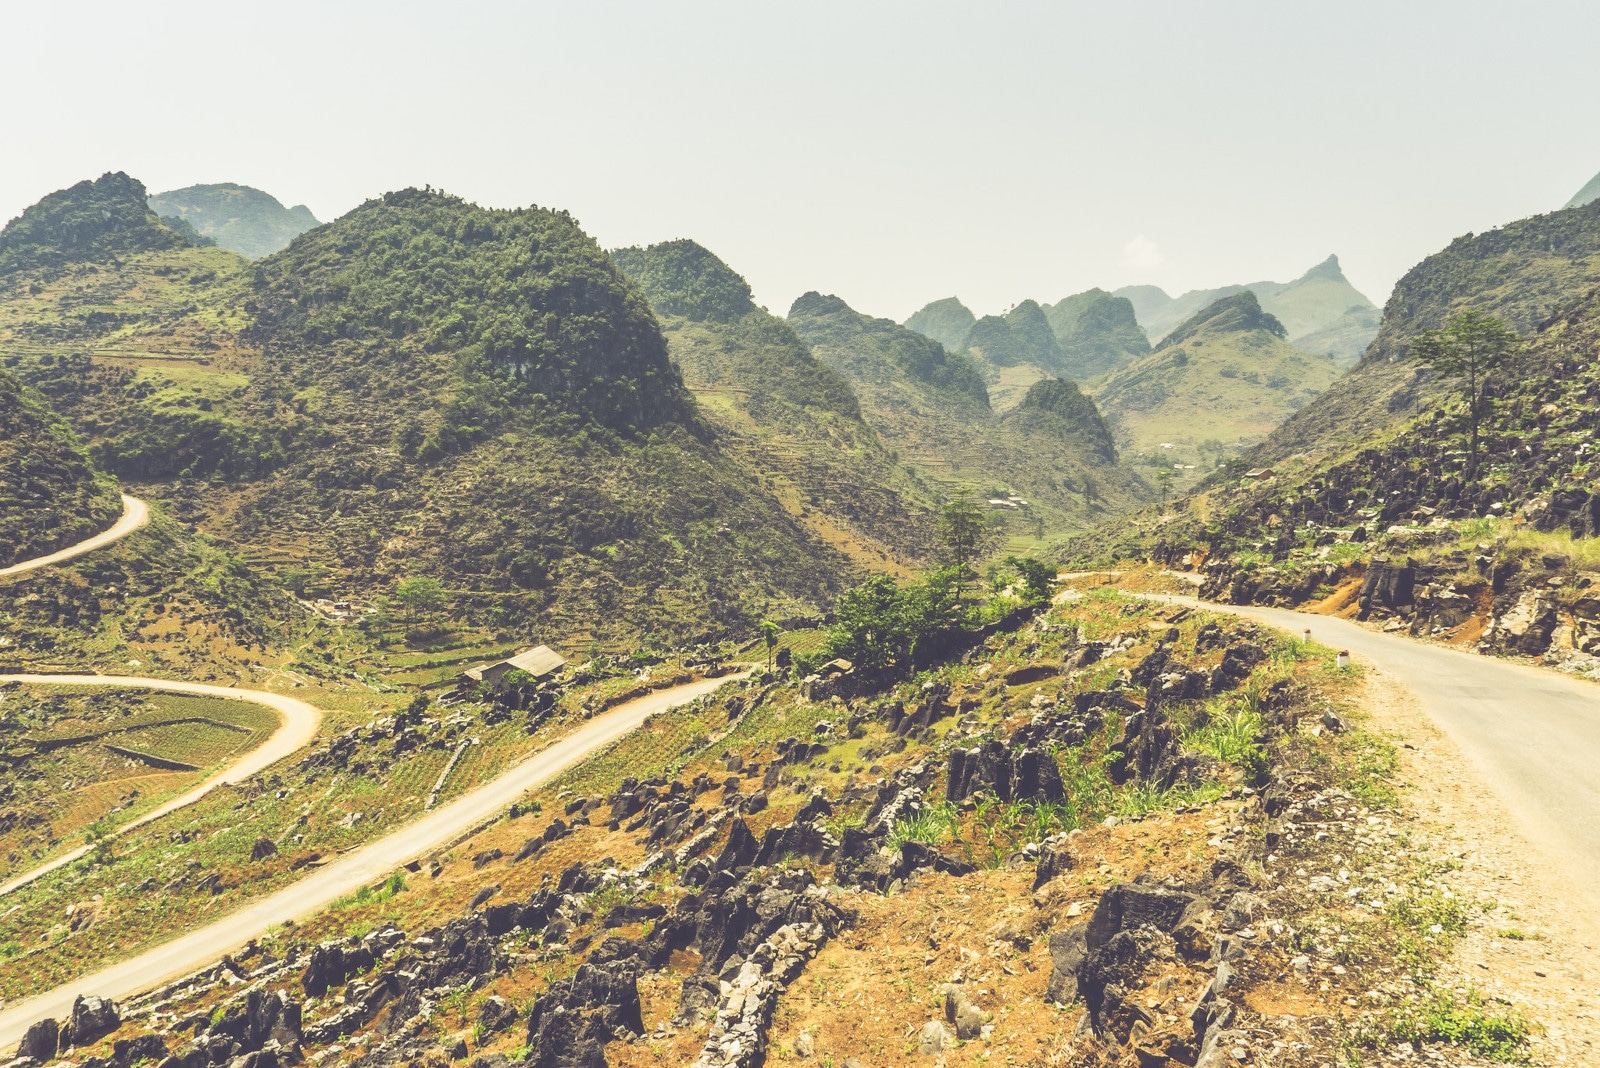 Image of the landscape along the Ha Giang Loop in Vietnam